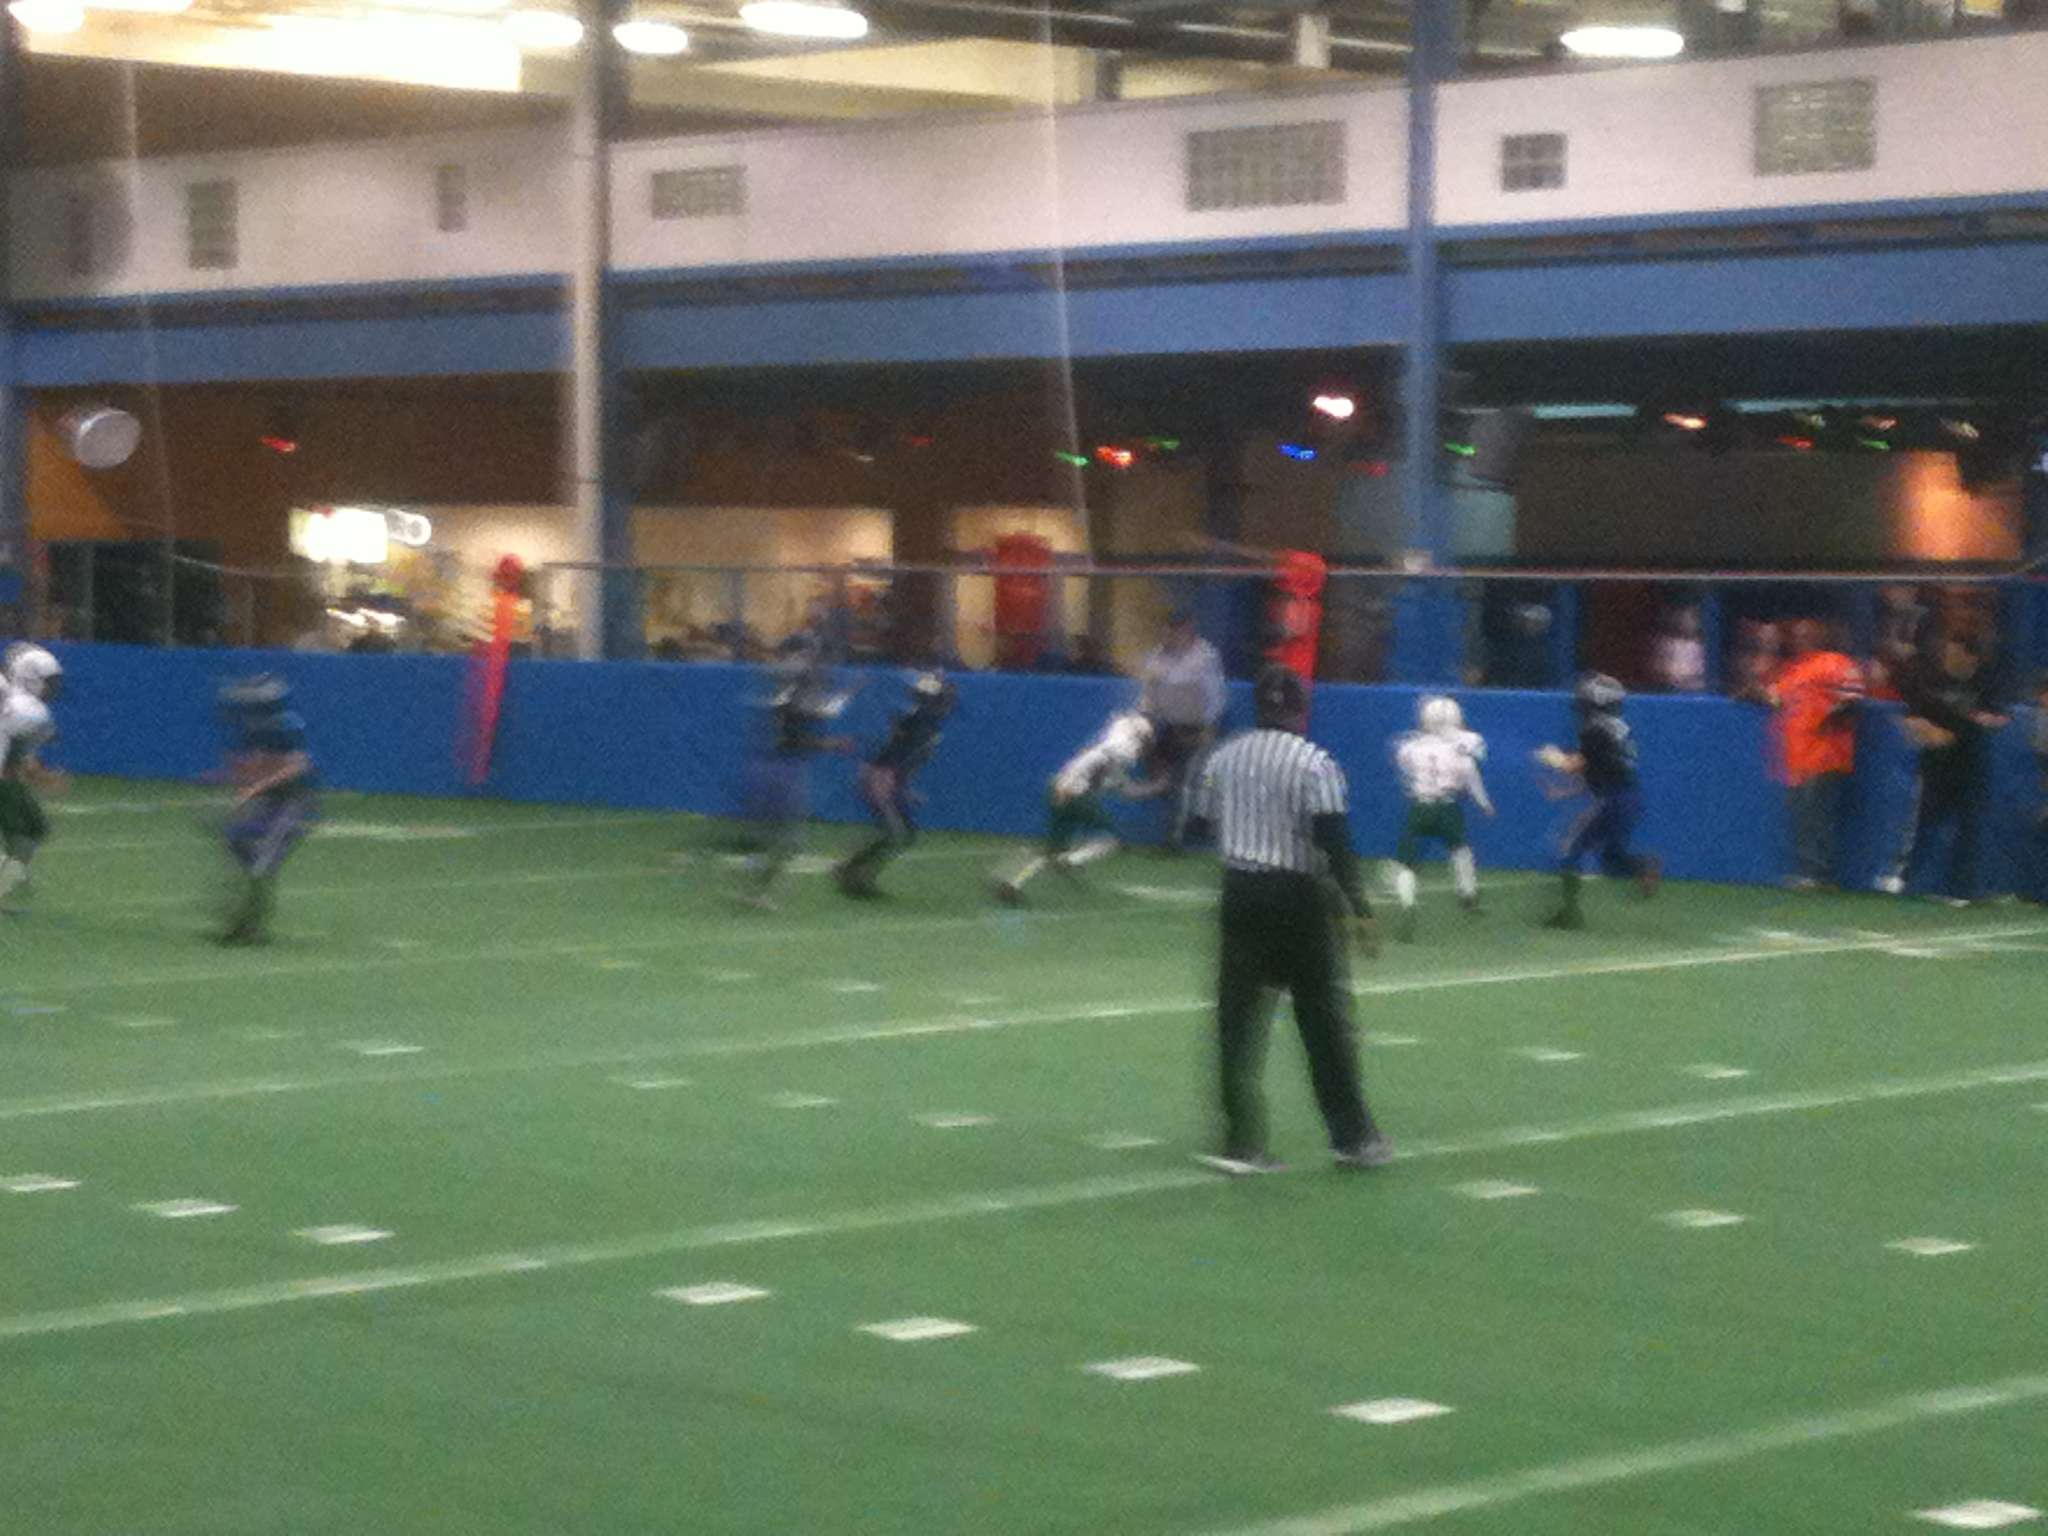 Titans2011-Arena Football 14U Team Pic 7.jpg